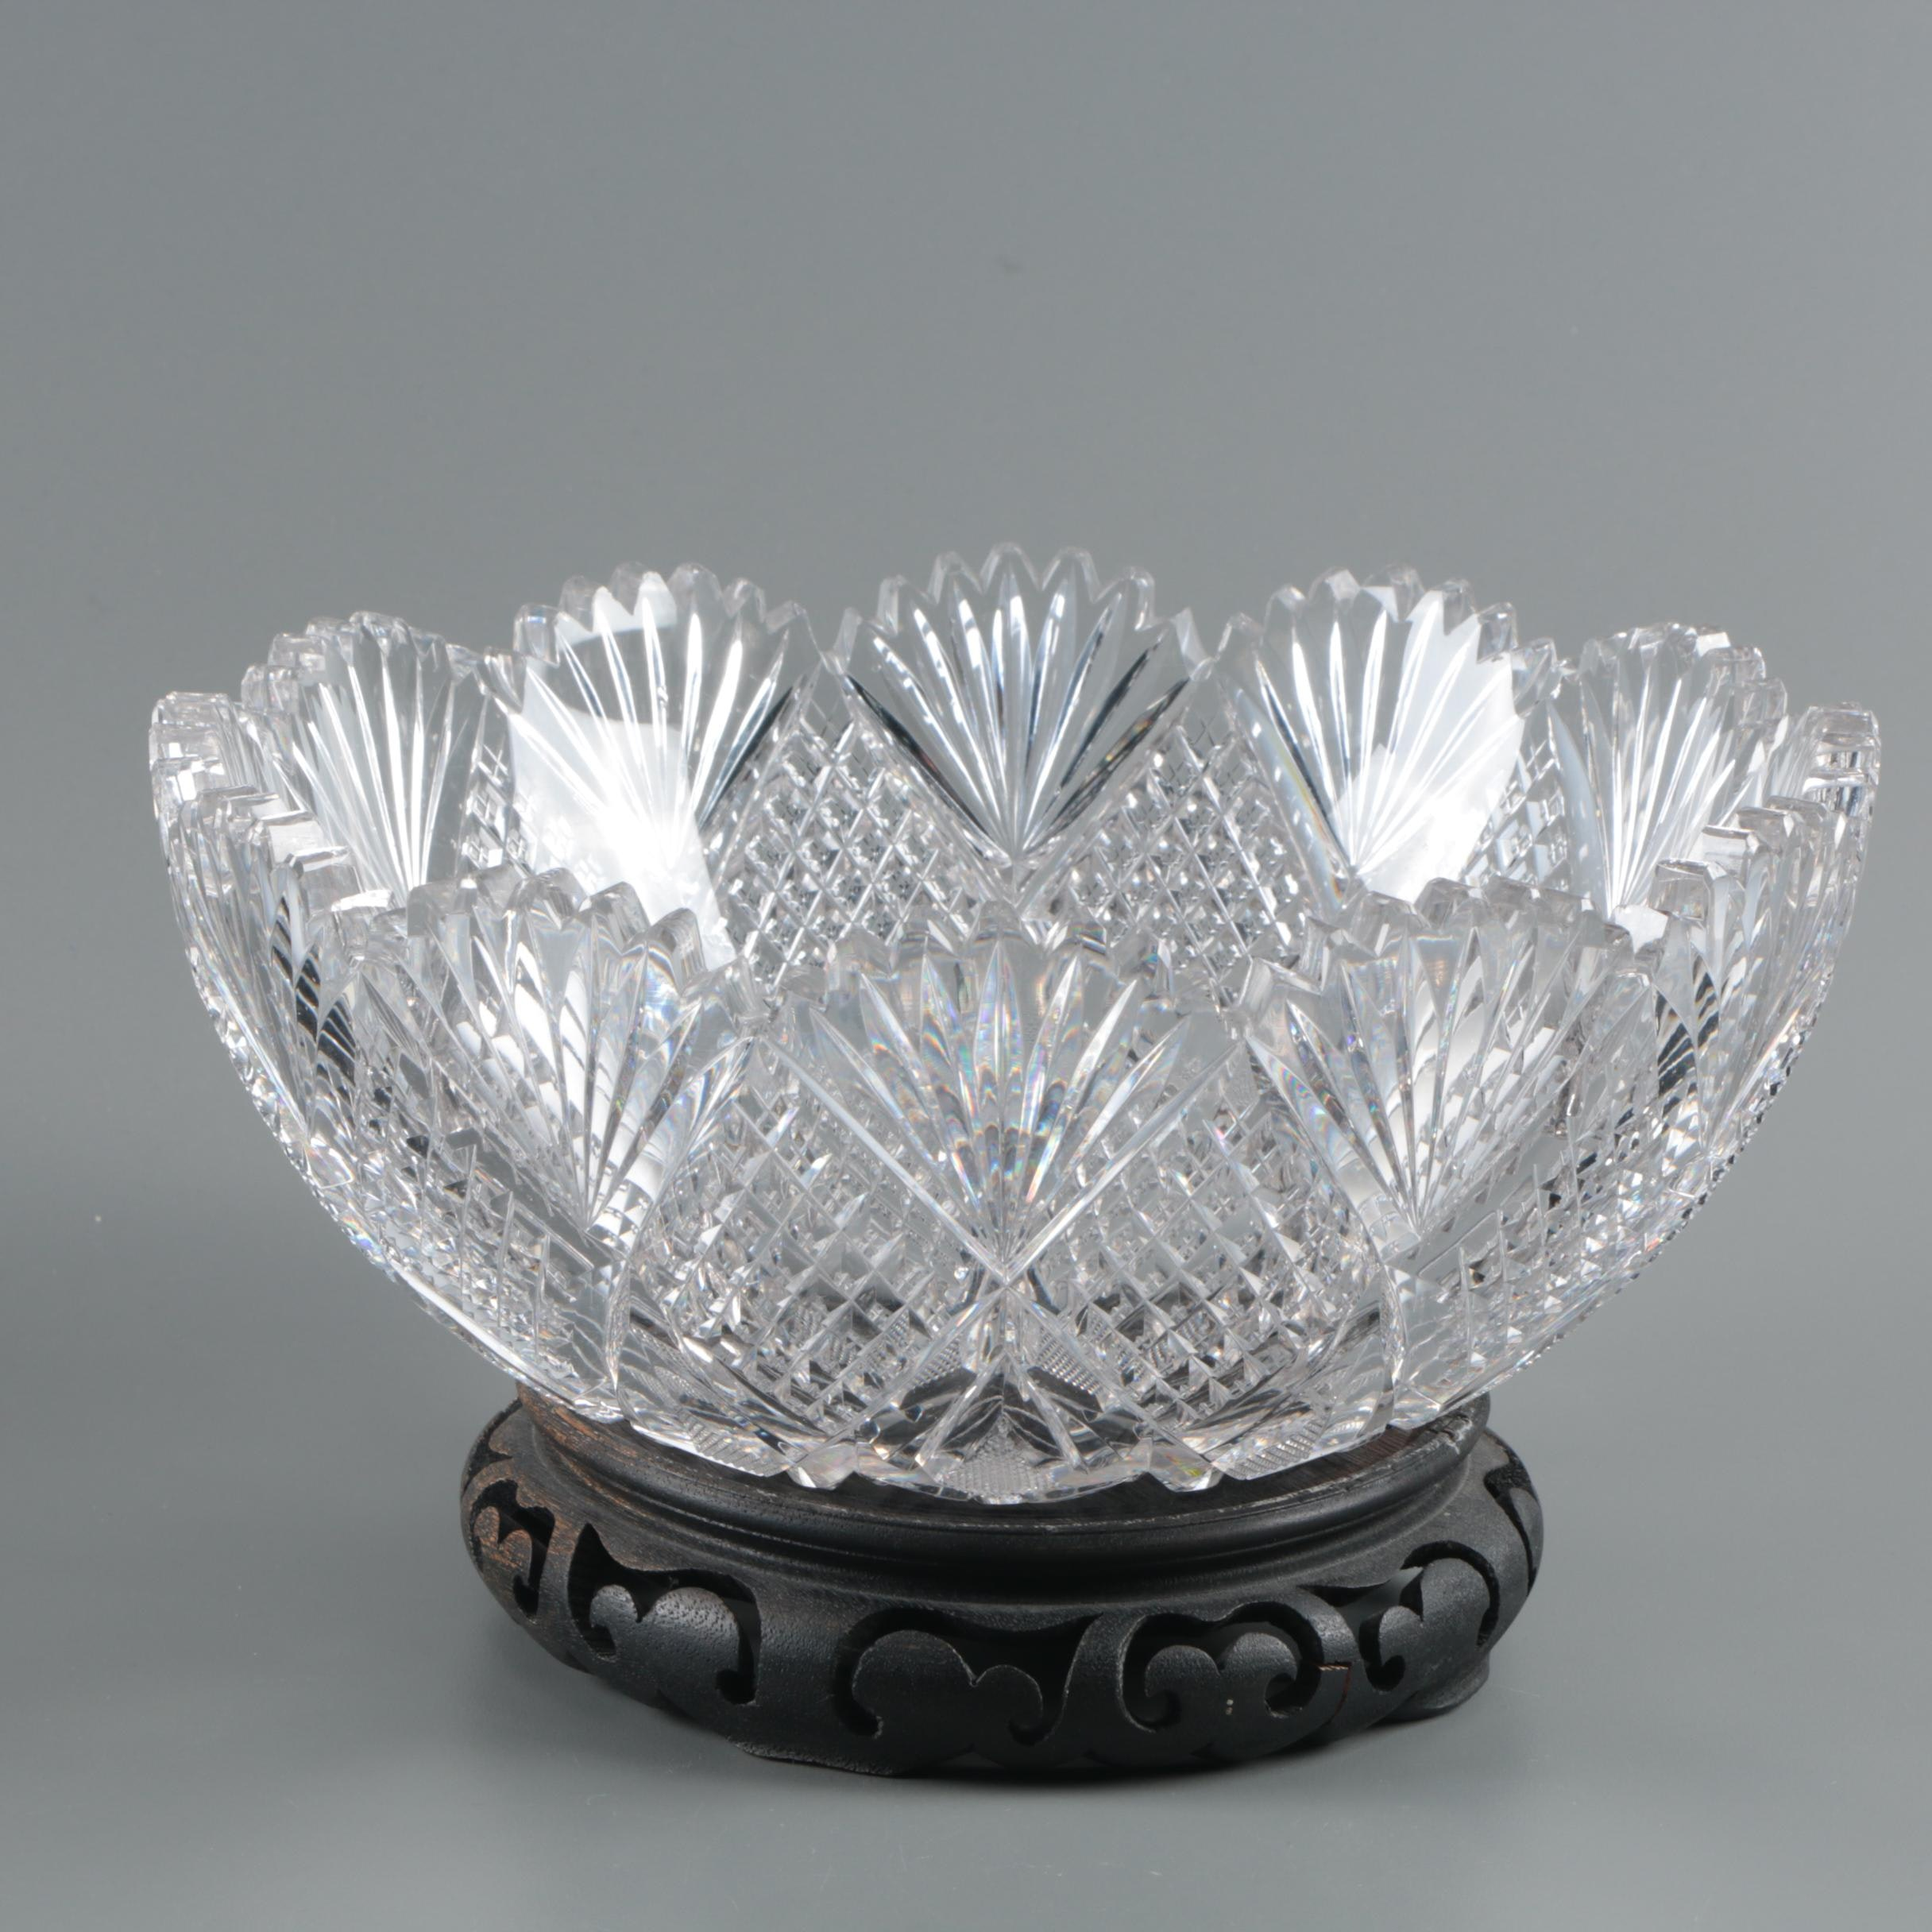 Hawkes Crystal Serving Bowl and Carved Wooden Stand